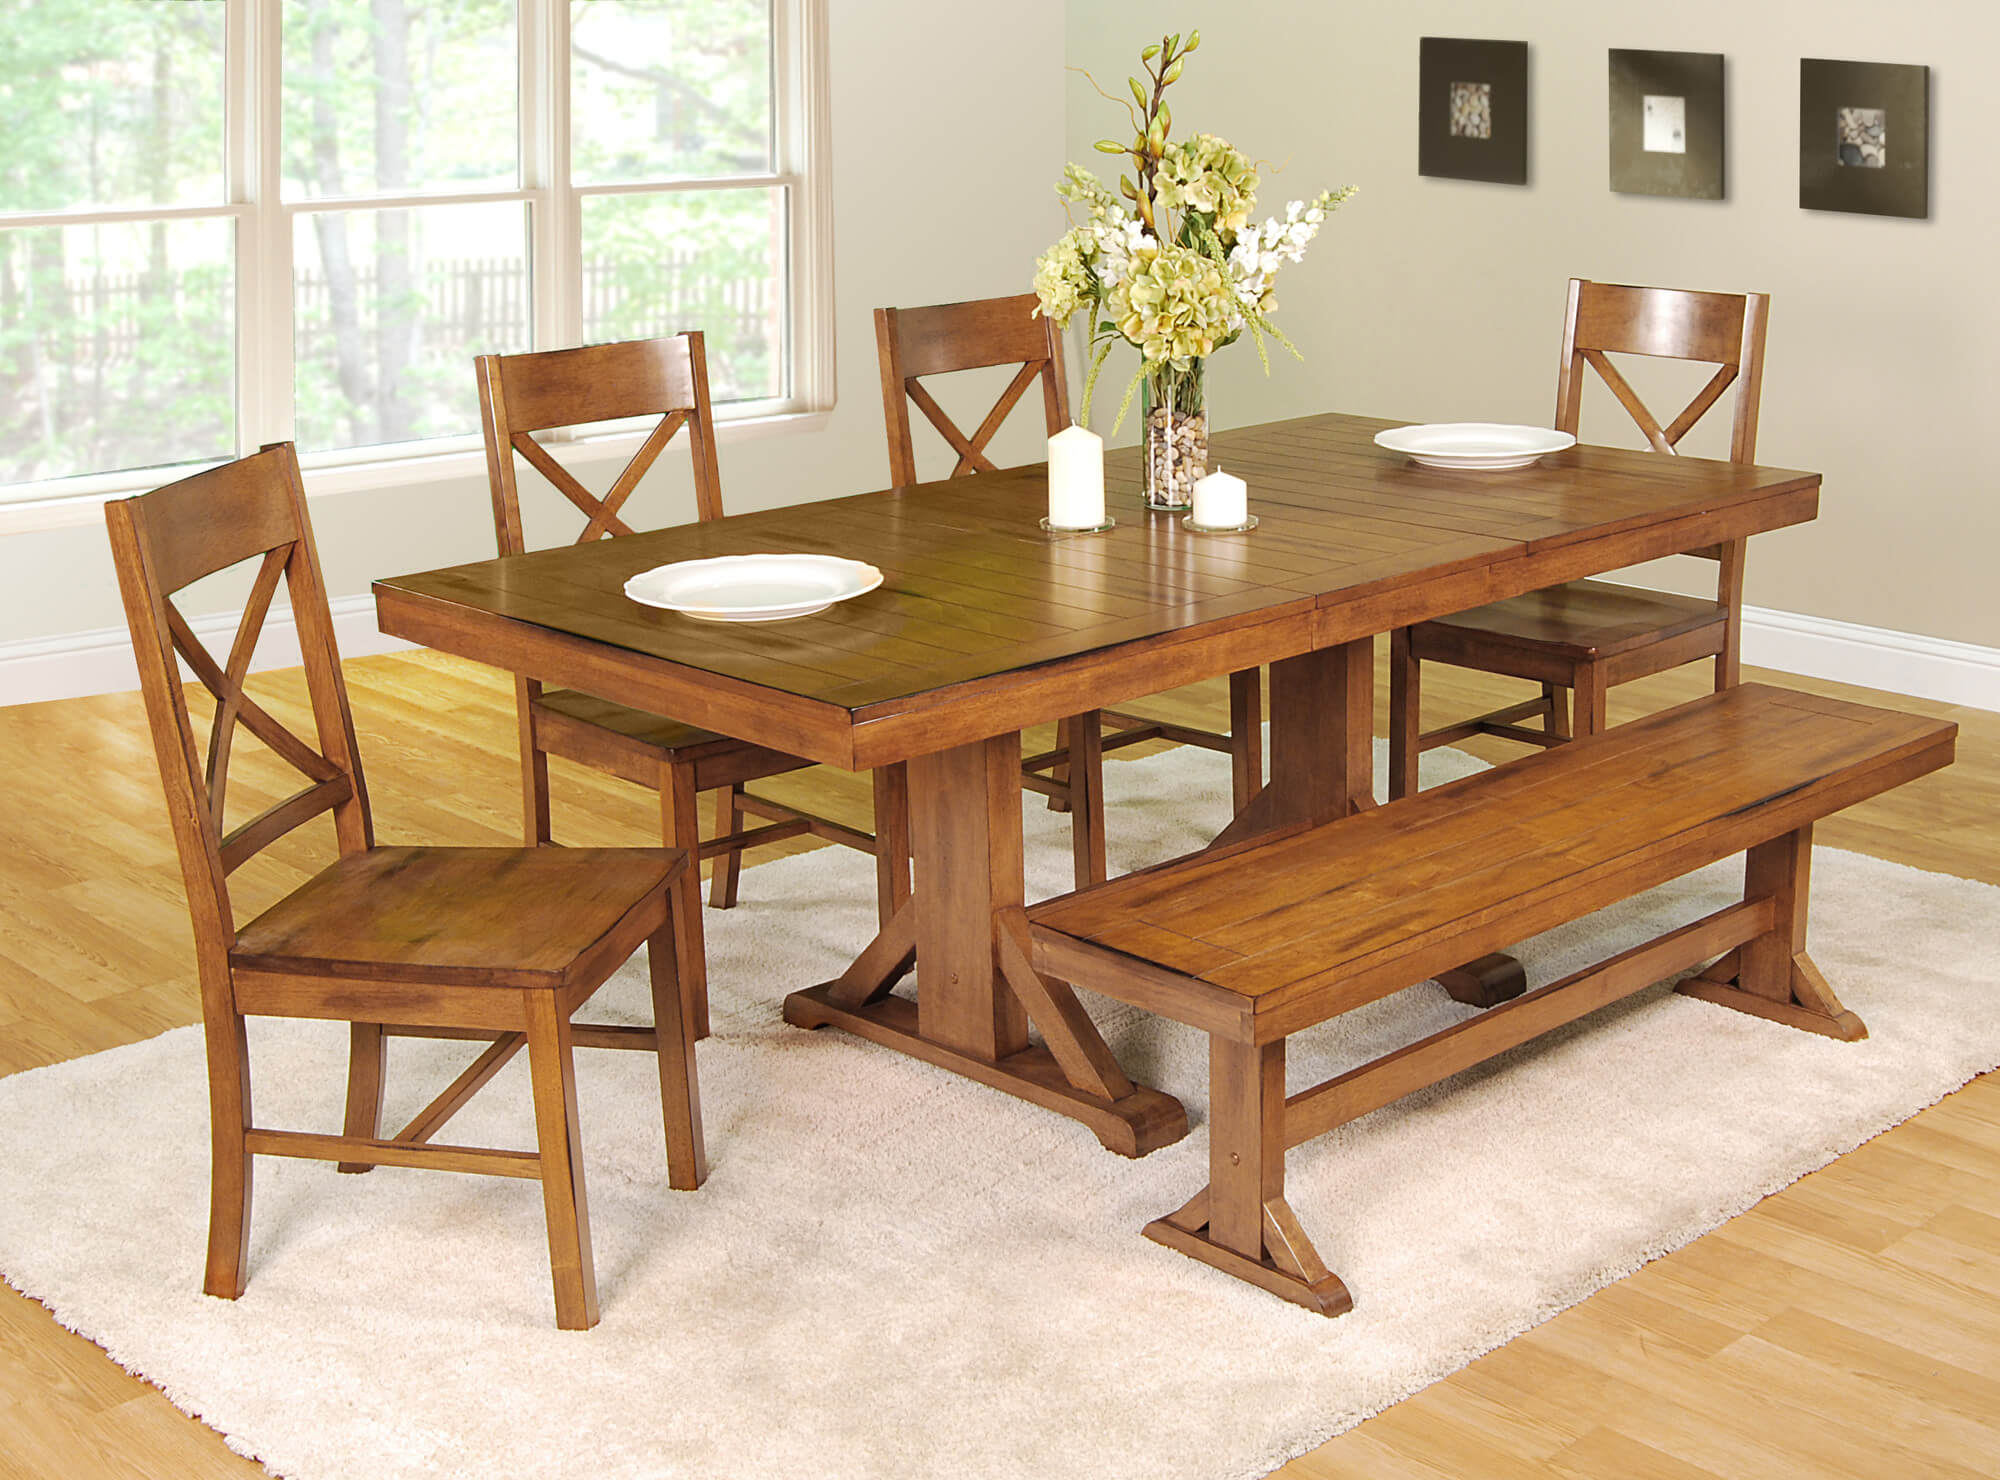 Small kitchen table set - This Dining Room Set With Bench Is Going For The Antique Look With An Antique Brown